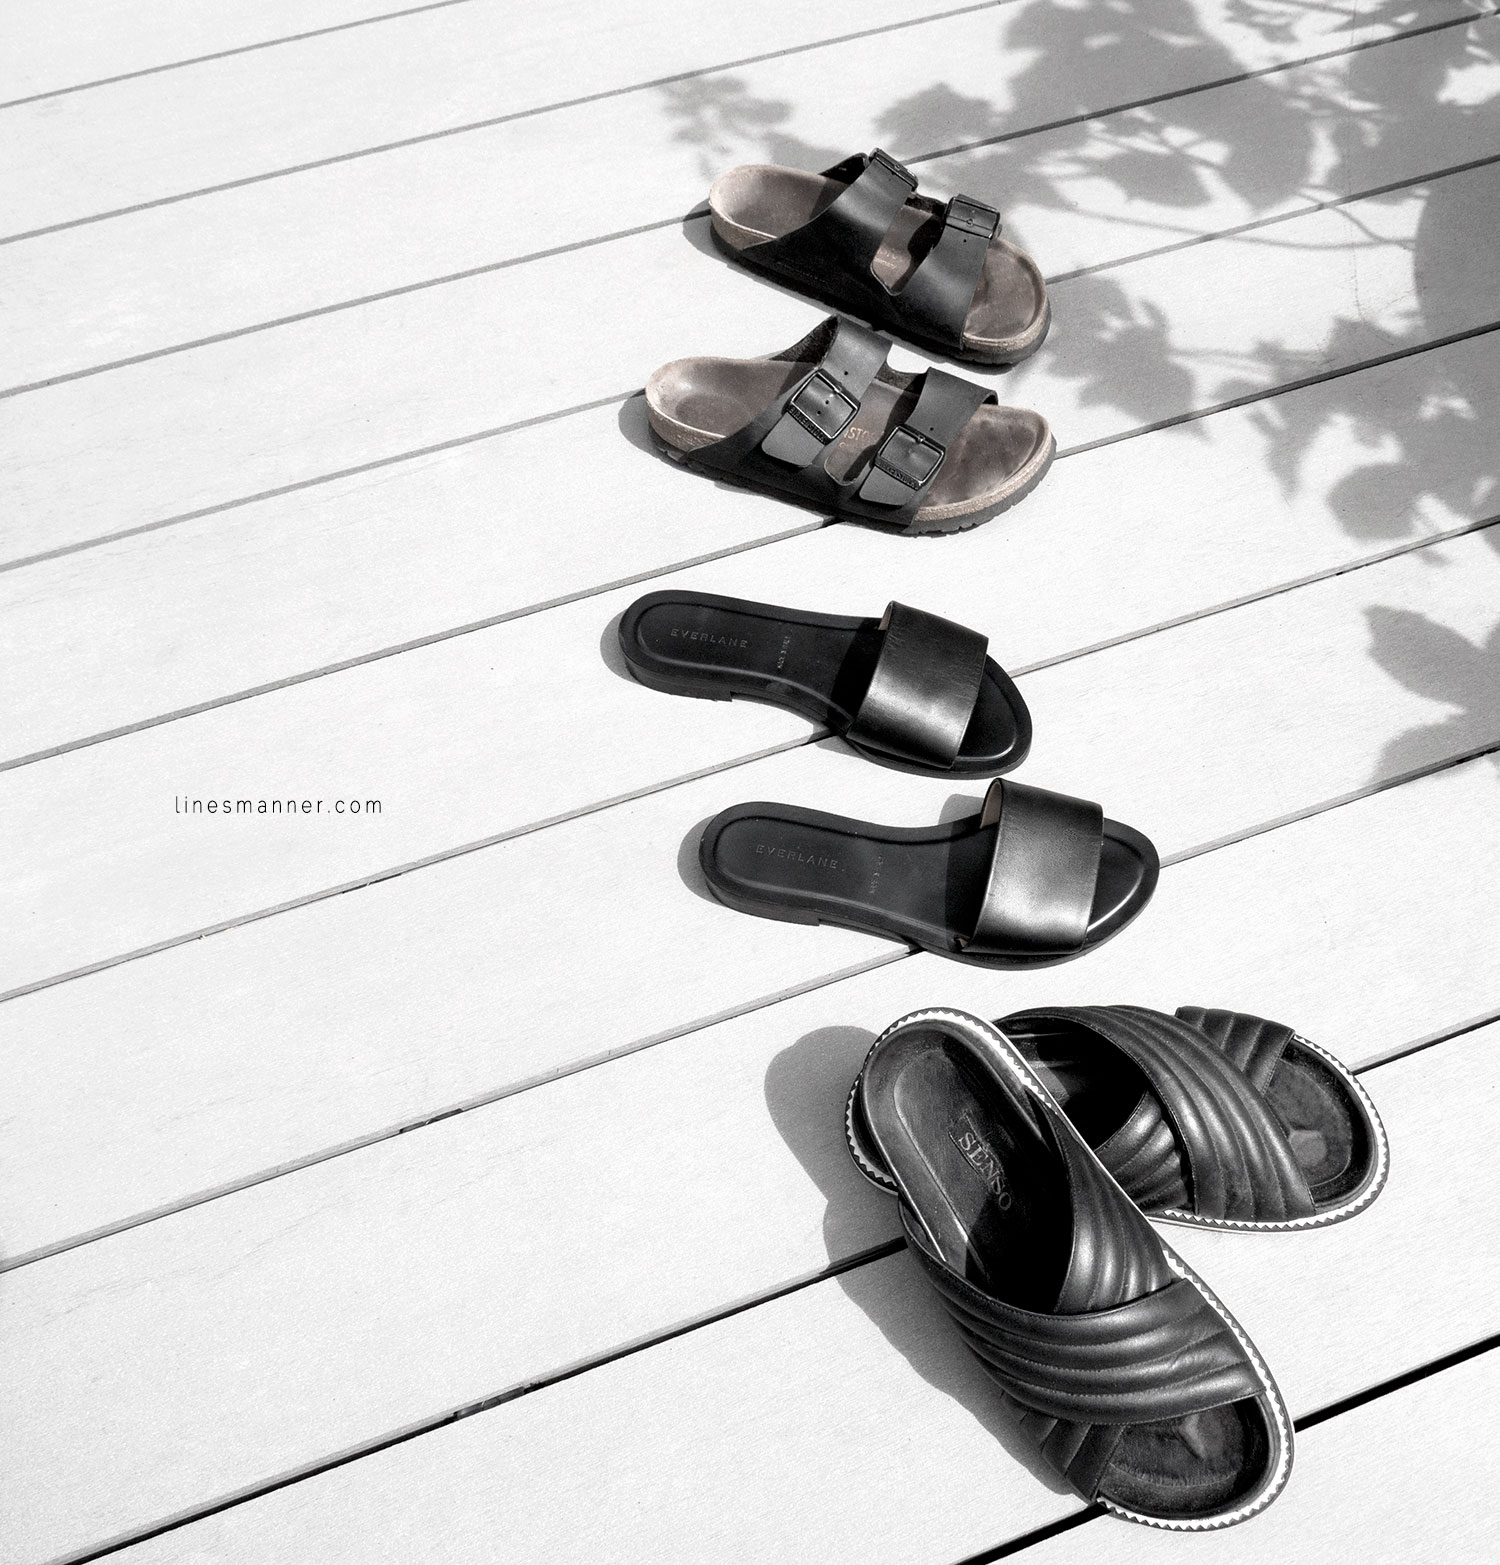 Lines-Manner-Summer-Shoes-Slides-Black-Leather-Minimal-Off_Duty-Senso_Everlane-Birkenstock-Essentials-Situation-2